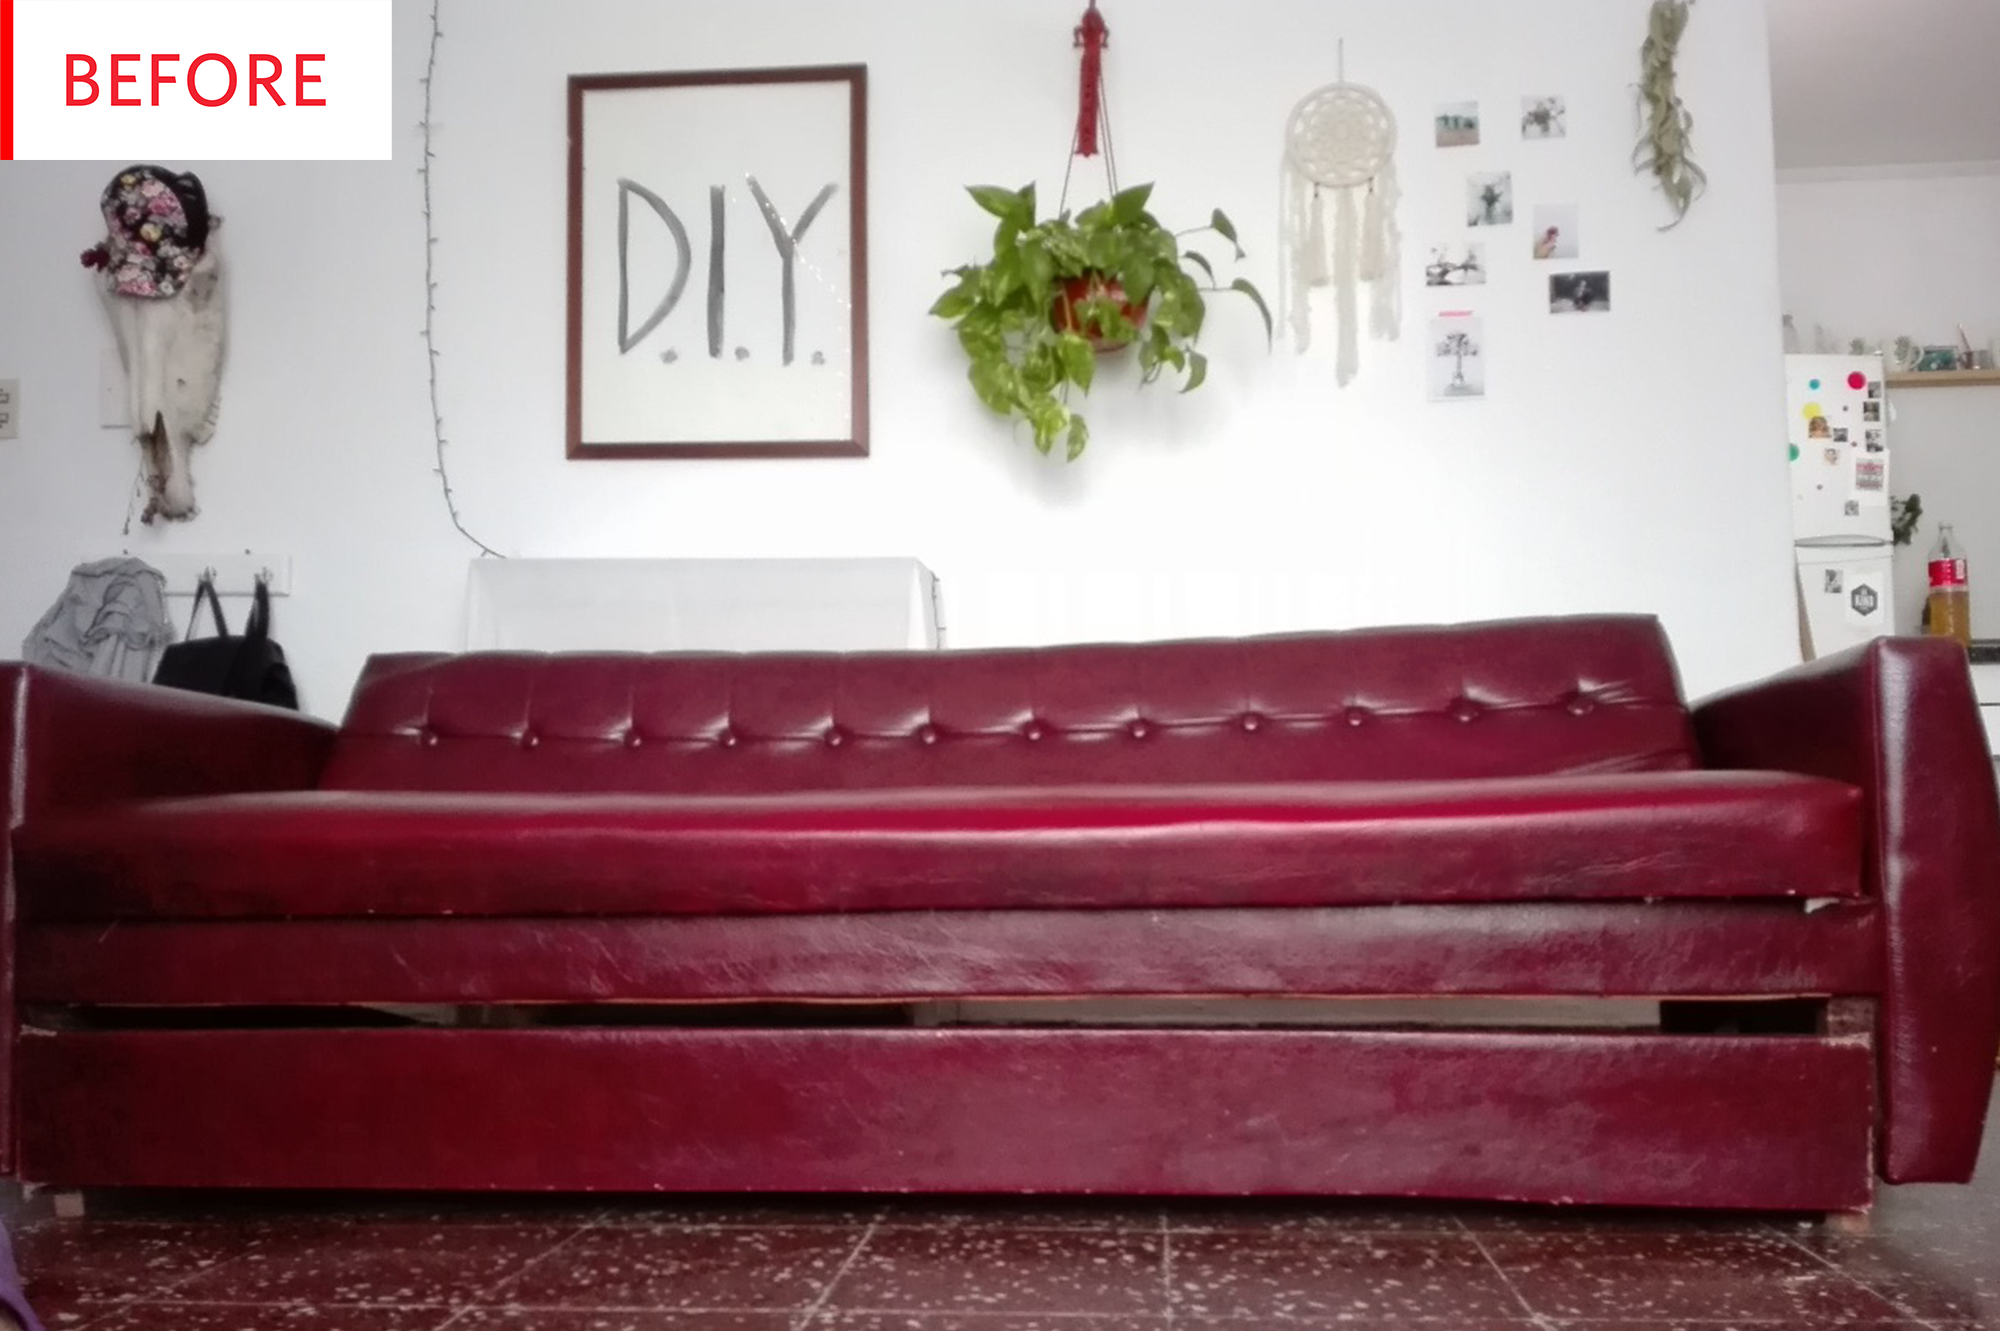 Before and After This Sofa Makeover Took 10 Minutes and $20 of